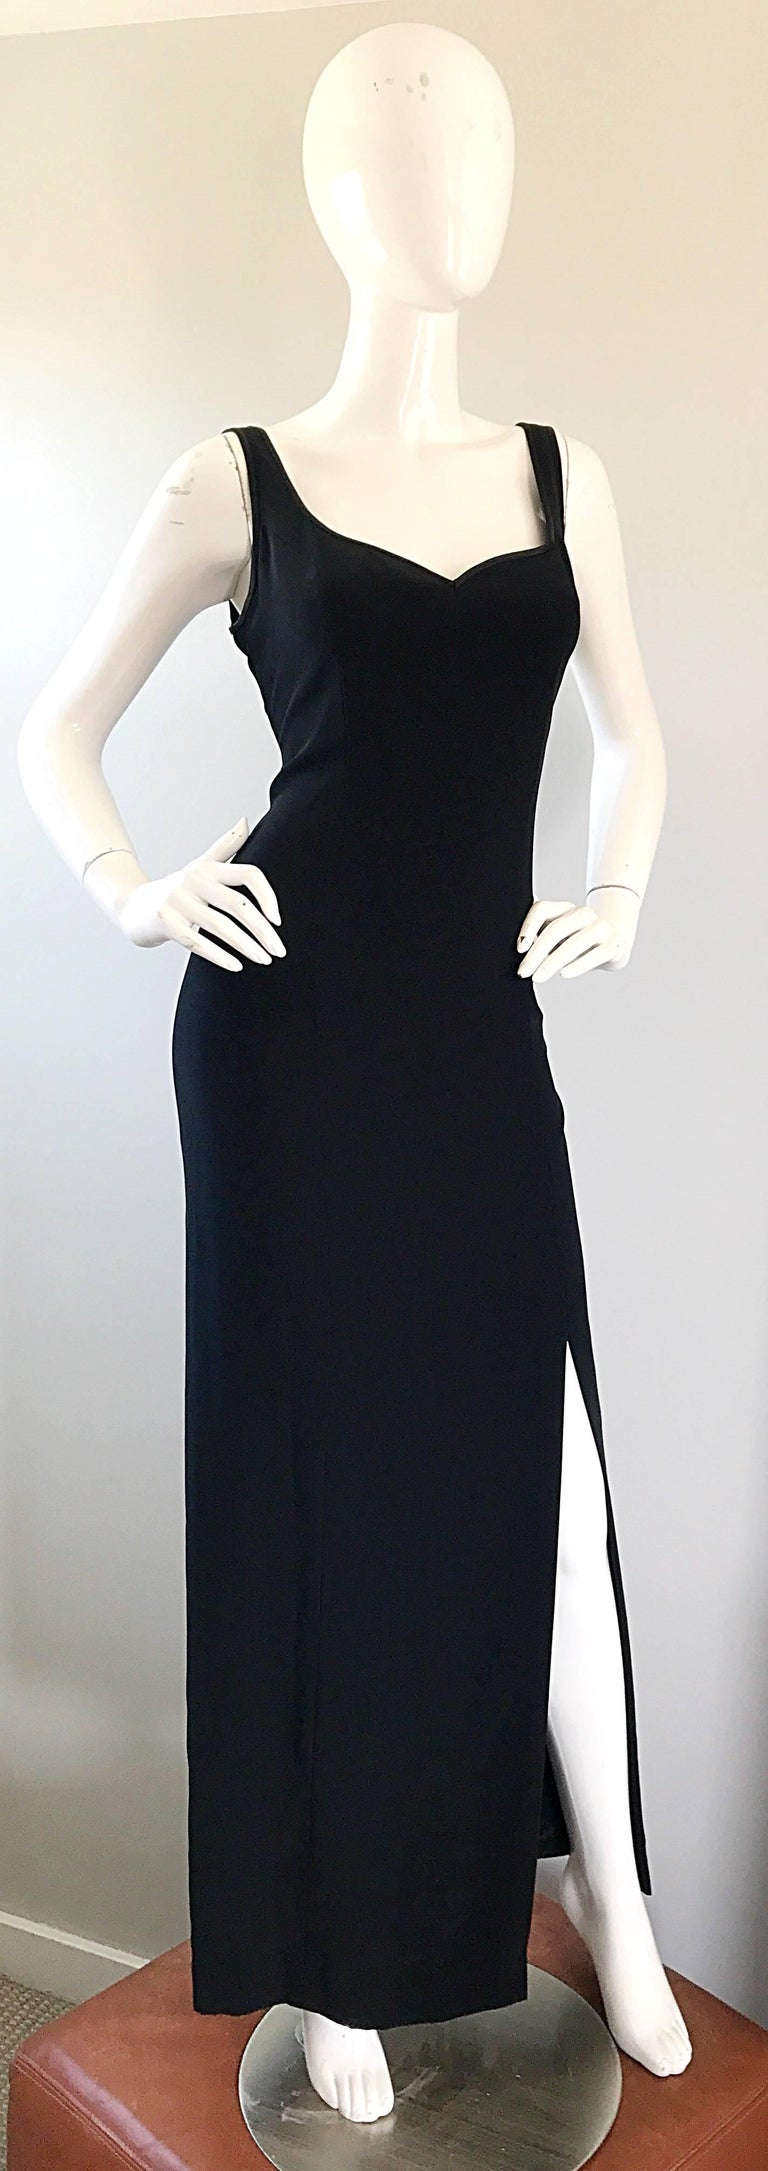 1990s Bob Mackie Size 10 Black Crepe Sexy 90s Vintage High Slit Evening Gown  For Sale 4